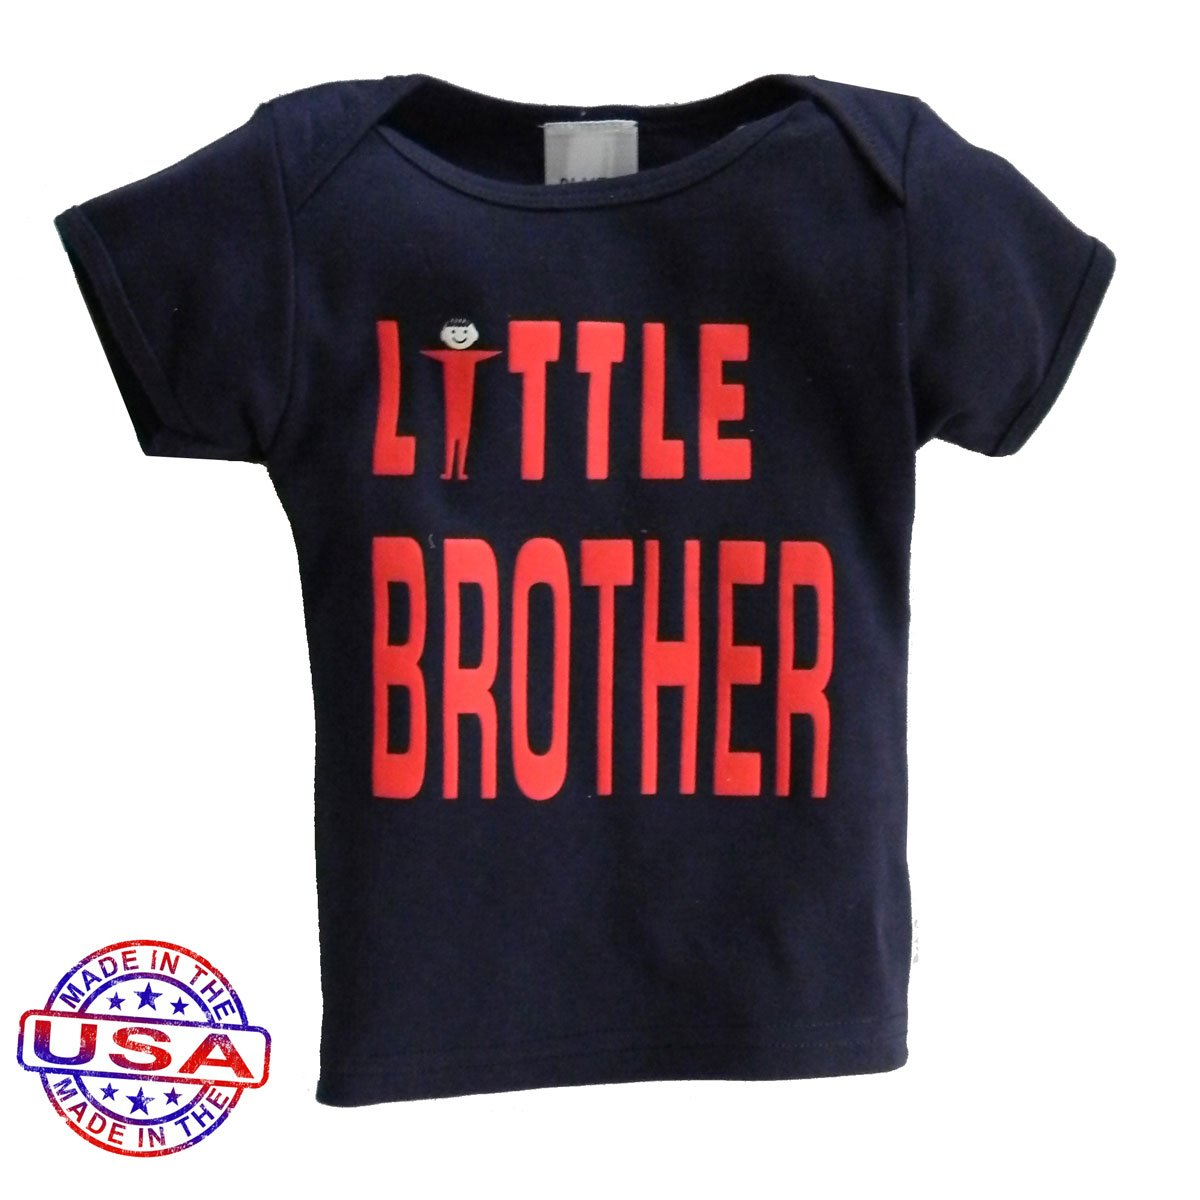 Little Boys' Little Brother Shirt by Pluto